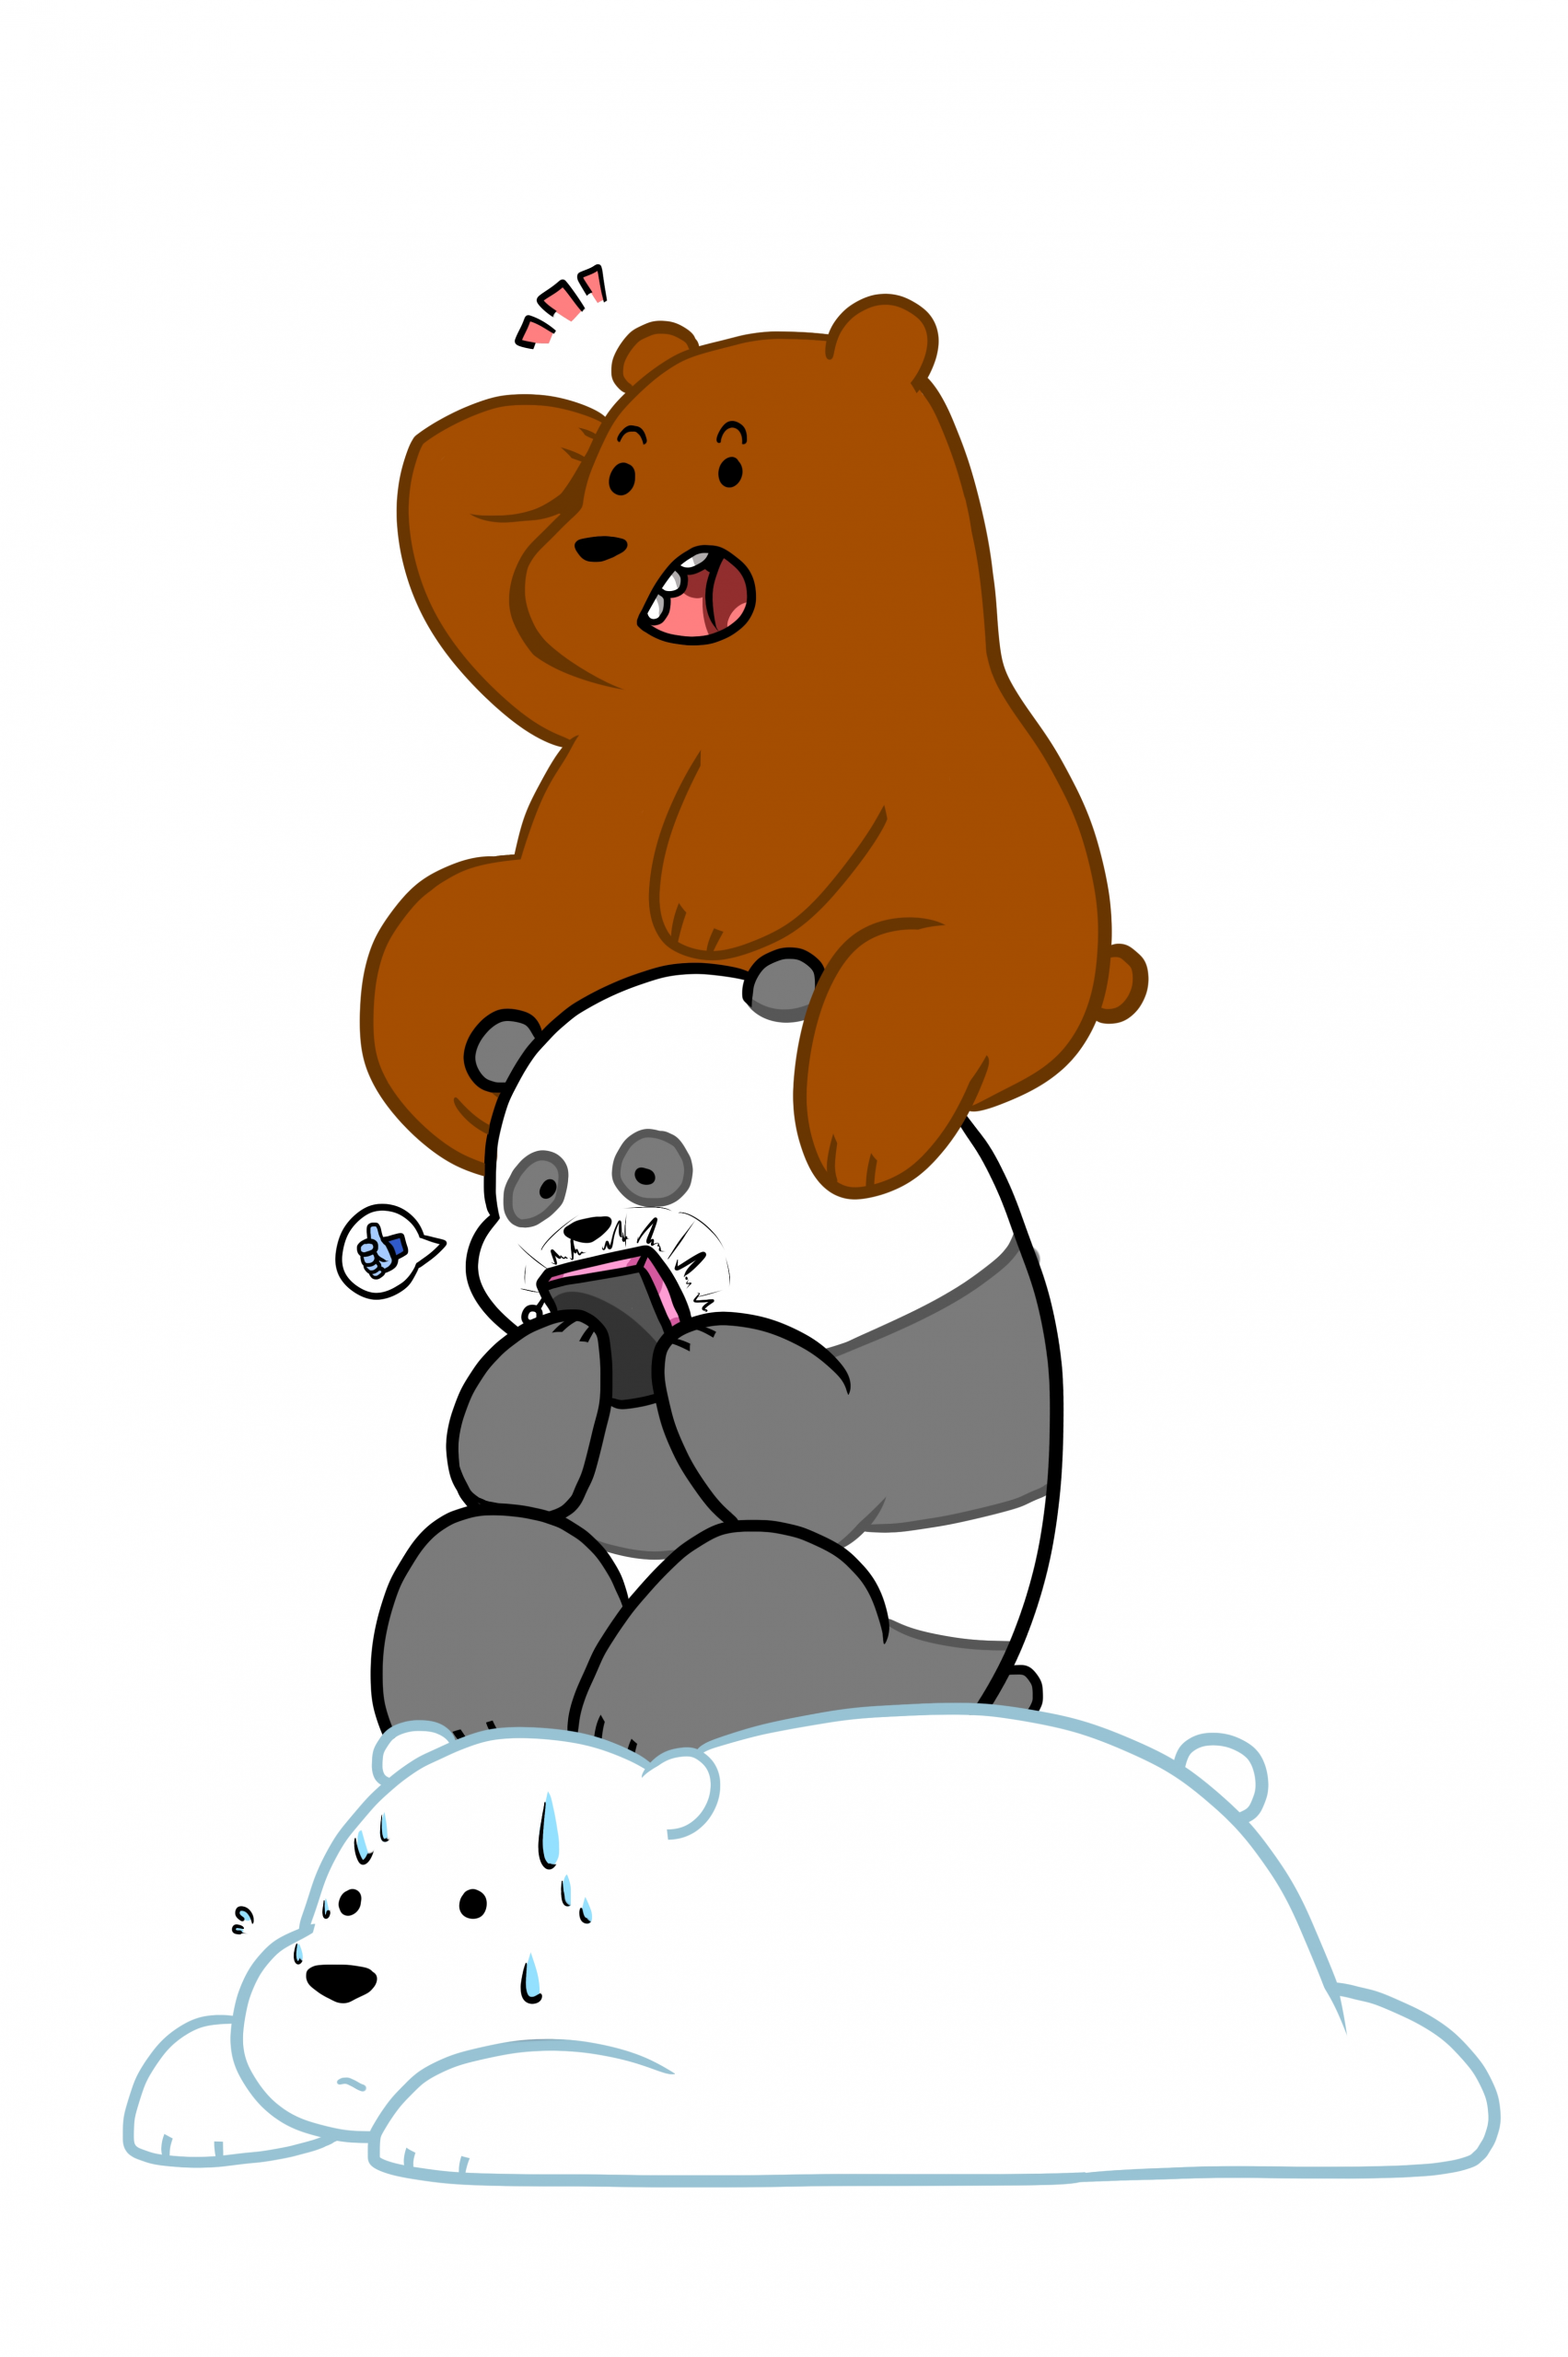 We Bare Bears Wallpapers Wallpaper Cave Within We Bare Bears Wallpaper Cute Hd Fondos De Pantalla Panda Fondo De Pantalla Oso Fondos De Pantalla Geniales